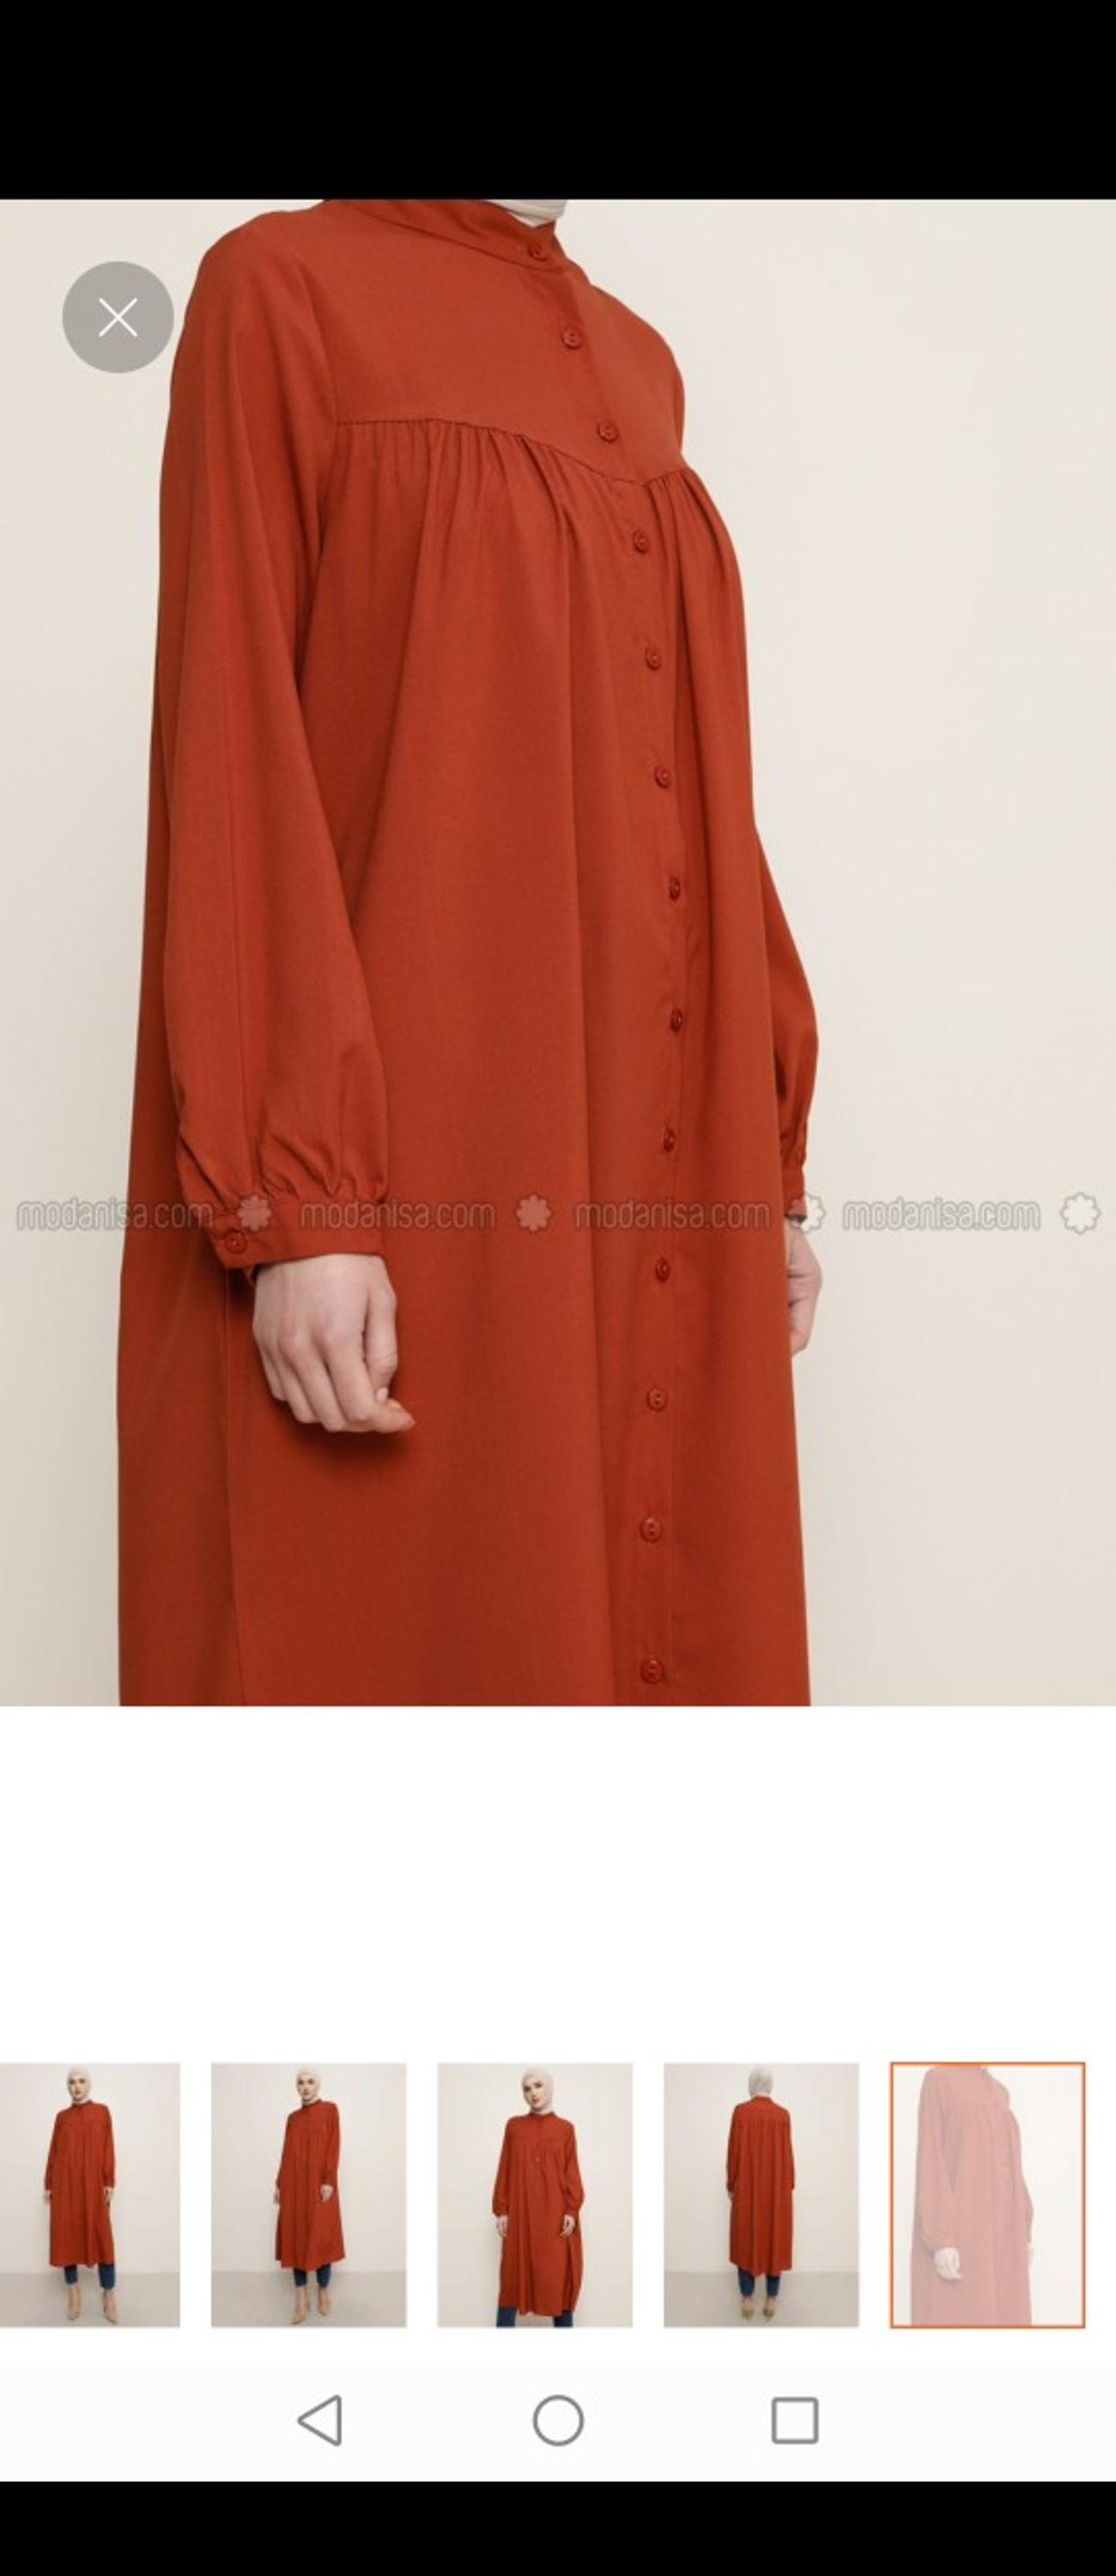 Terracota shirt dress in size 12 Brand new unused Perfect for timeless fashion look